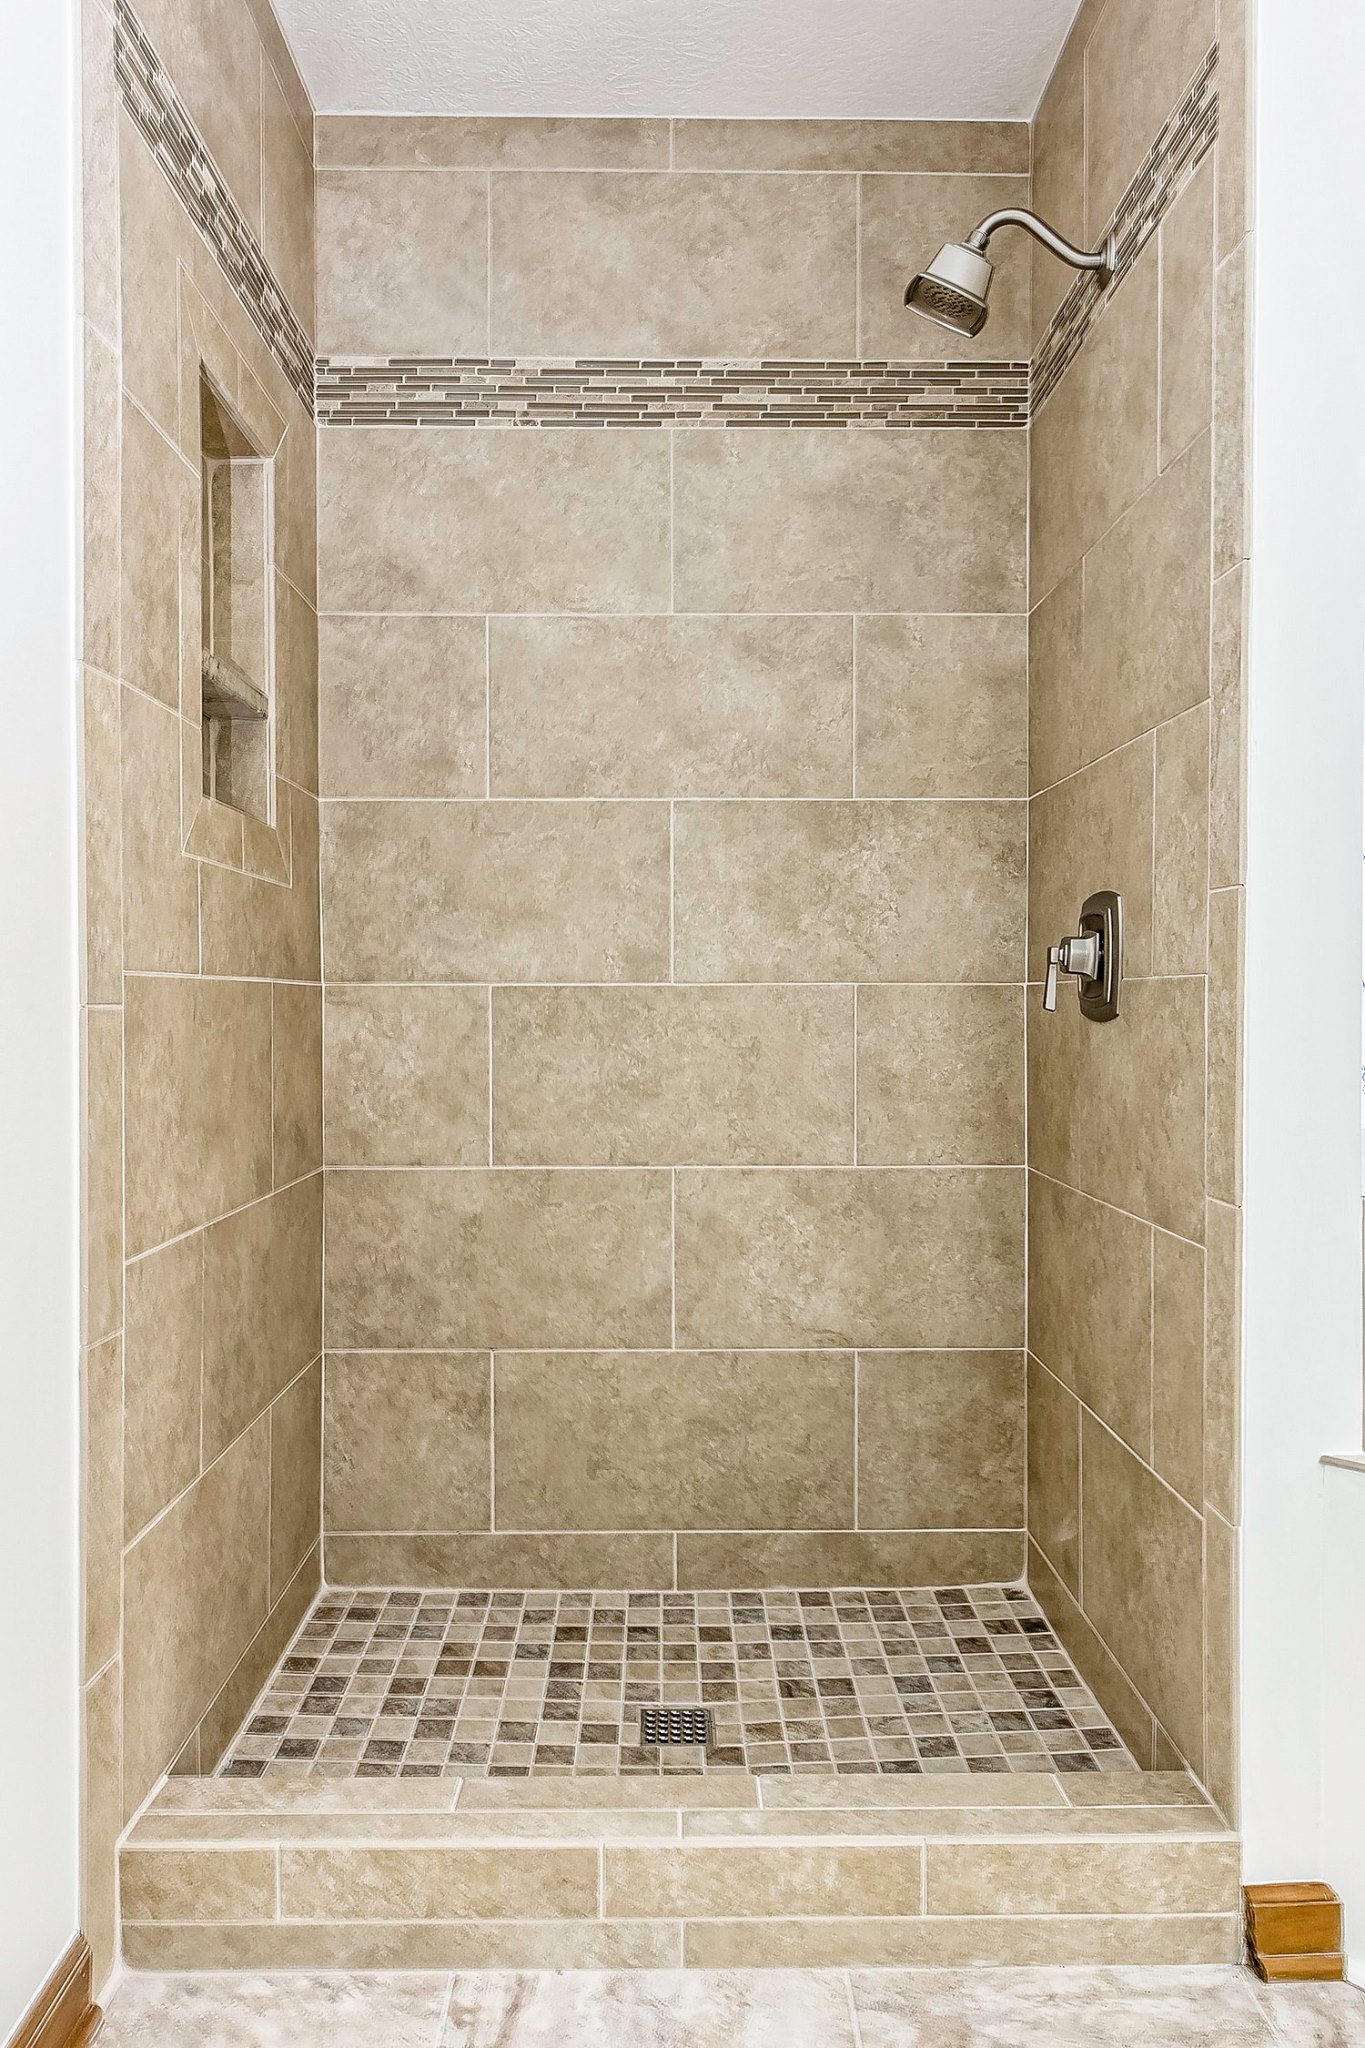 Make your shower great again! | Ohio Property Brothers